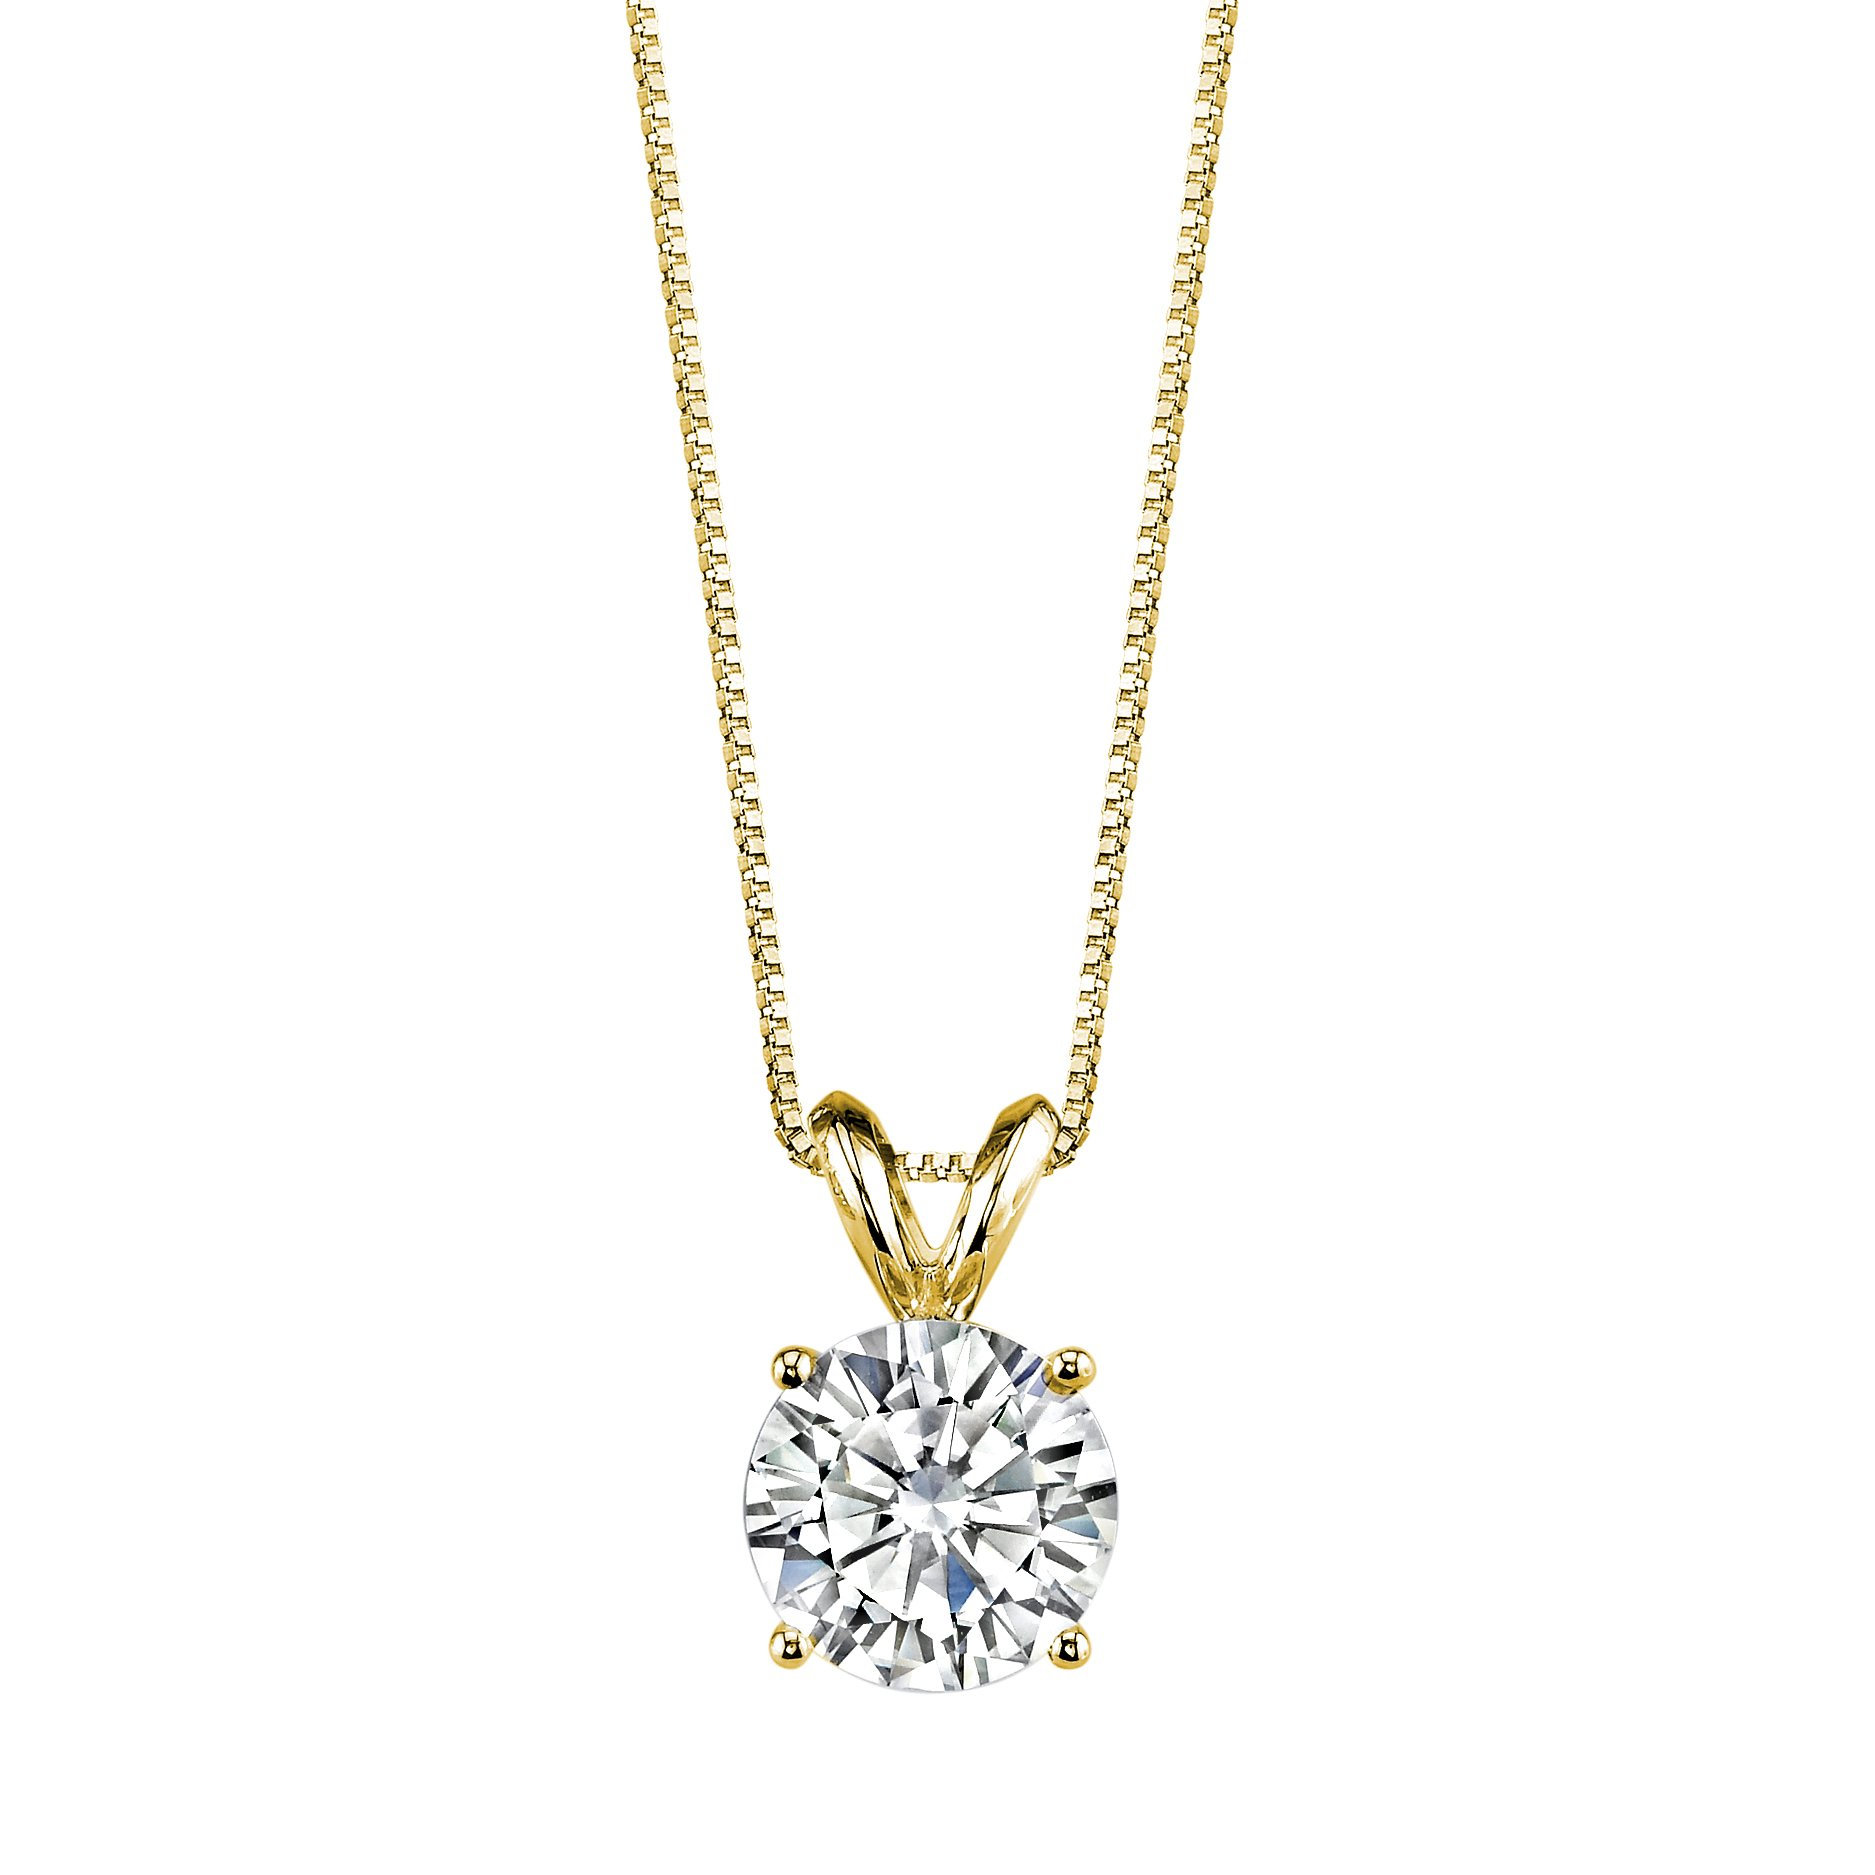 Forever Brilliant Round Cut 7.5mm Moissanite Pendant Necklace, 1.50ct DEW By Charles & Colvard